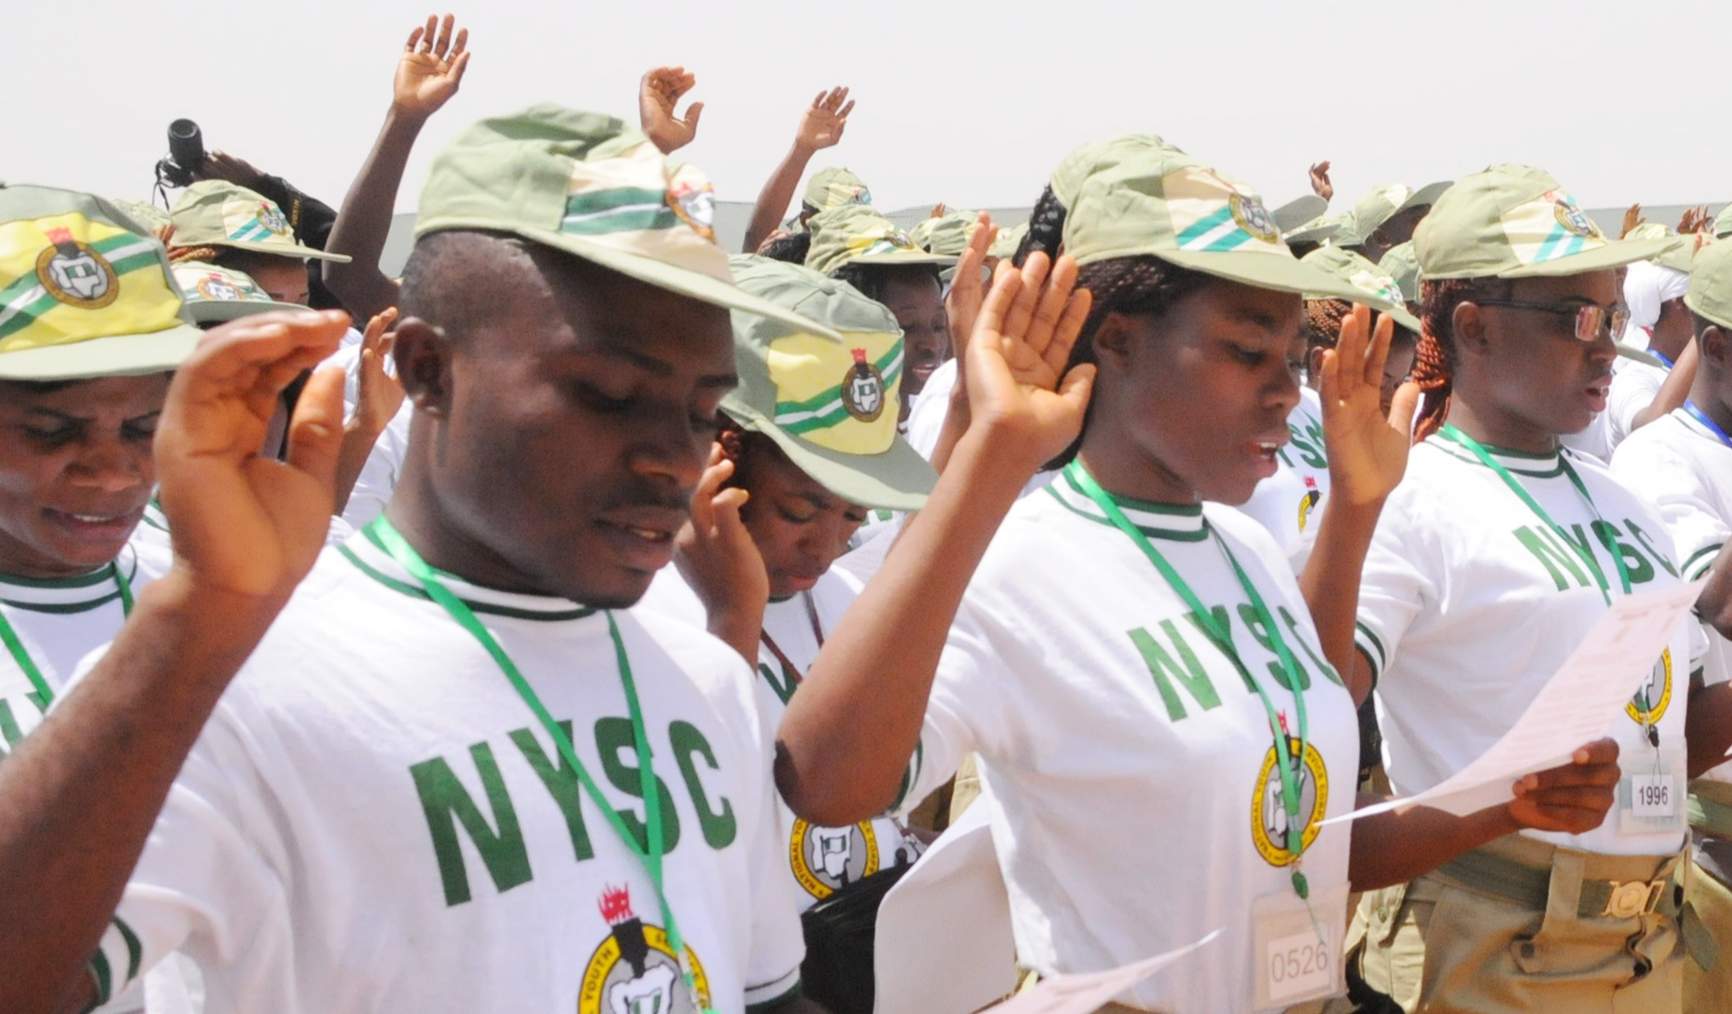 FW: NYSC bans corps members from unauthorised journeys